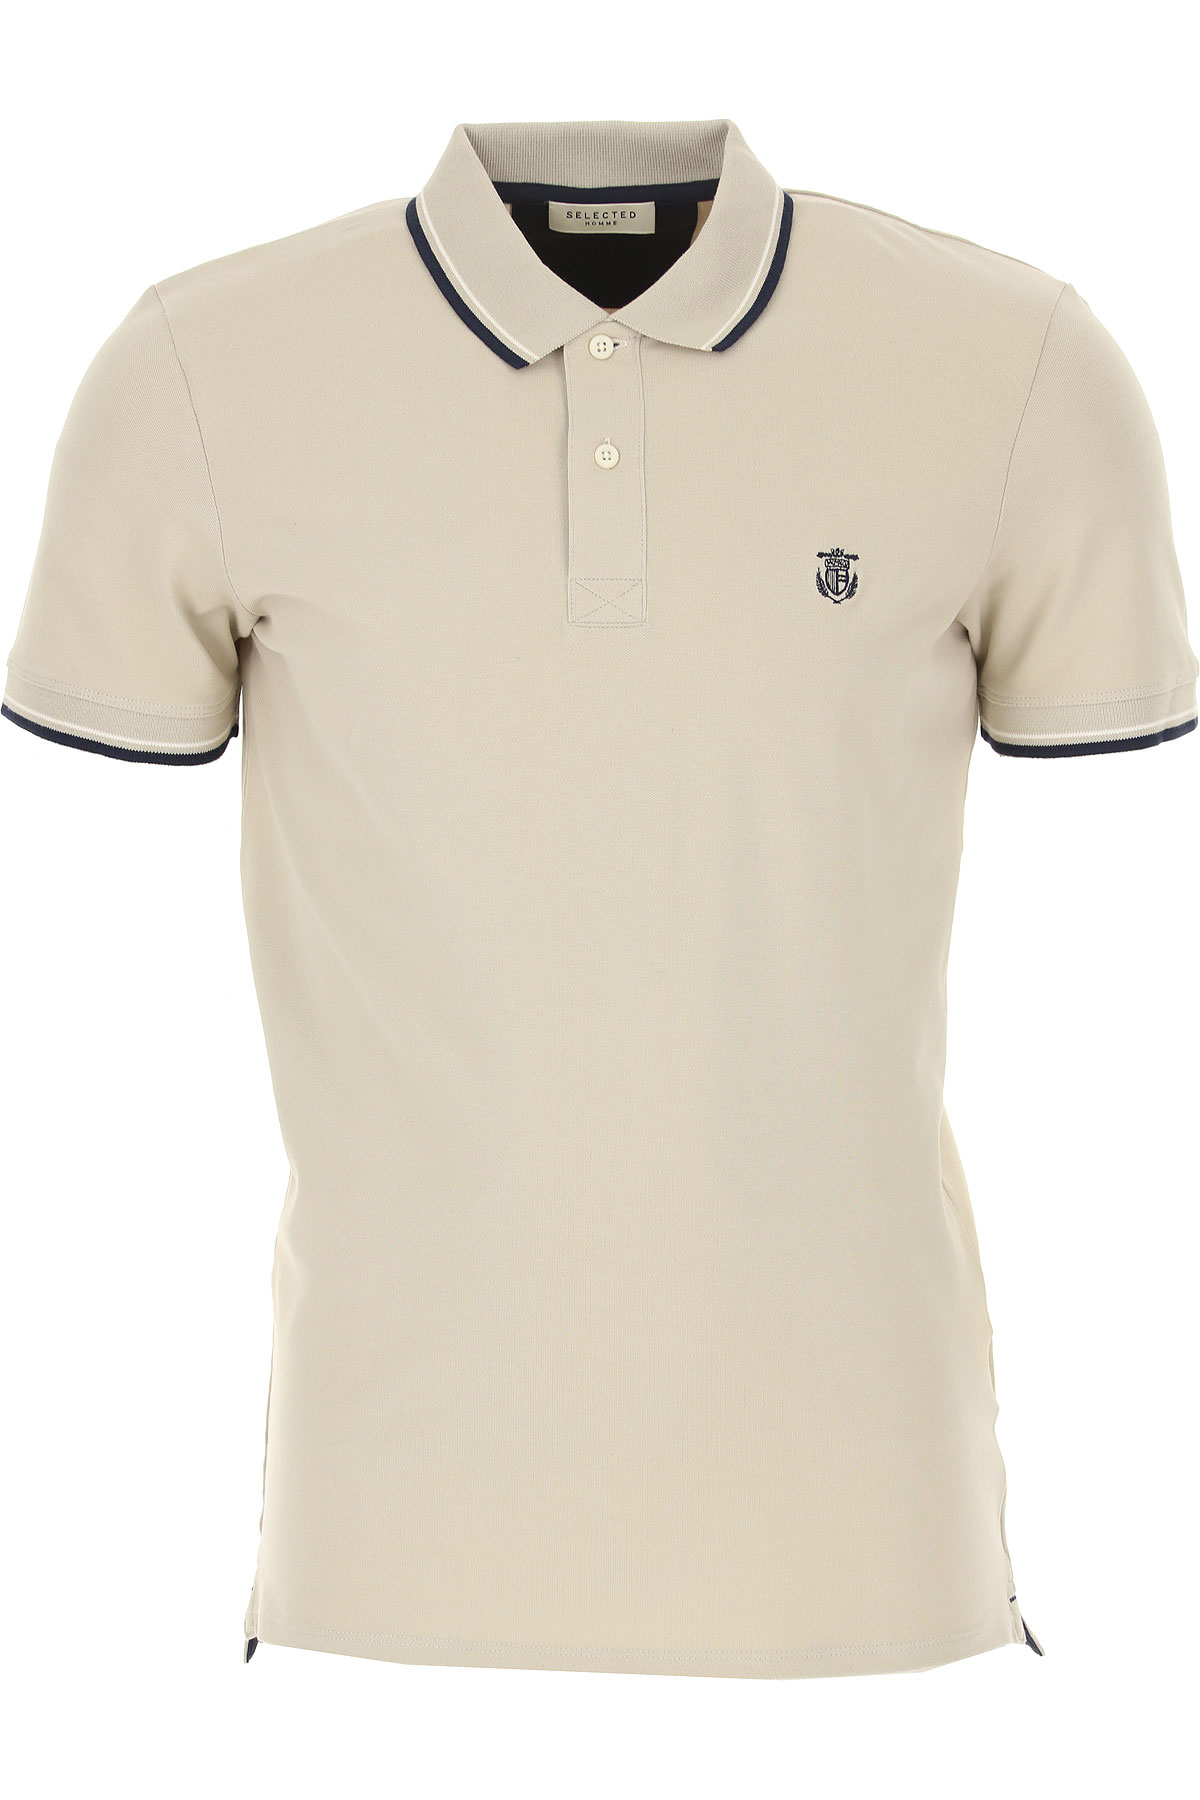 Selected Polo Shirt for Men On Sale, Light Beige, Cotton, 2019, M S